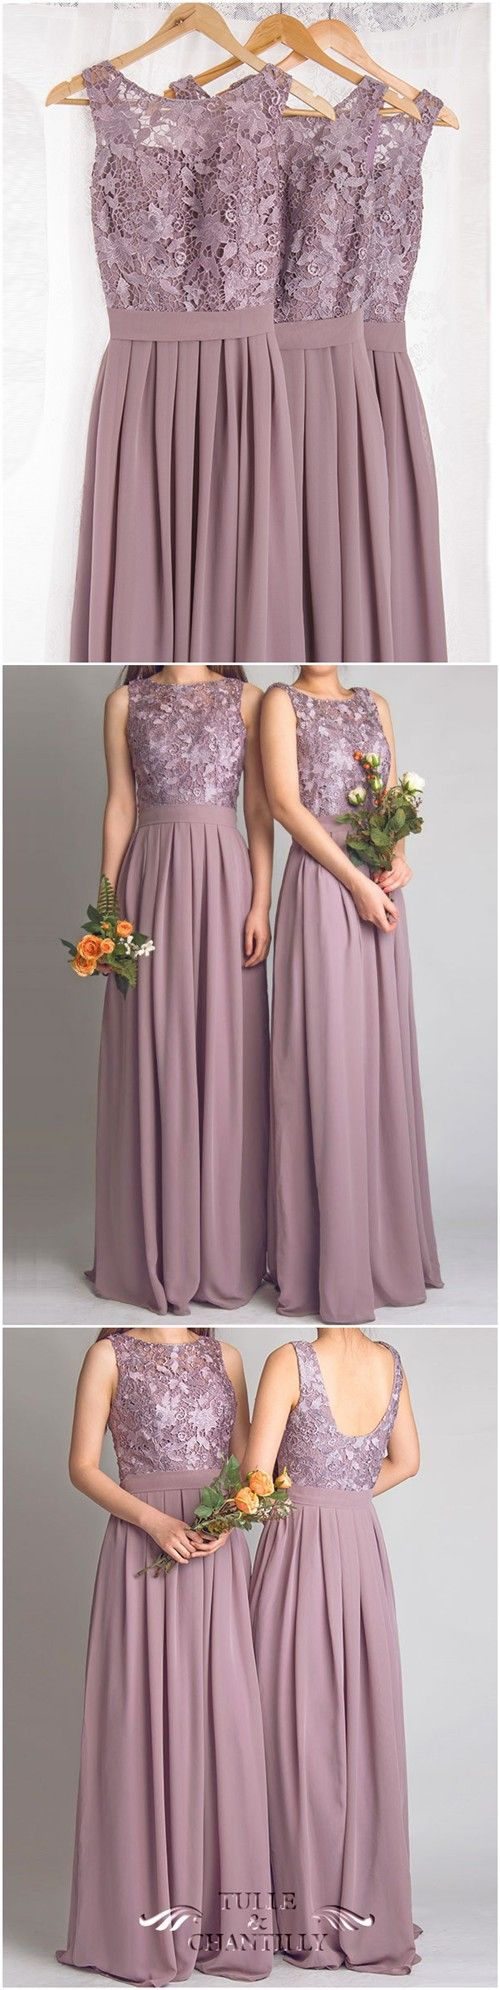 Best 25 vintage bridesmaid dresses ideas on pinterest pink dramatic vintage lace bridesmaid dresses with flowing chiffon skirt future bridesmaid dresses ombrellifo Image collections